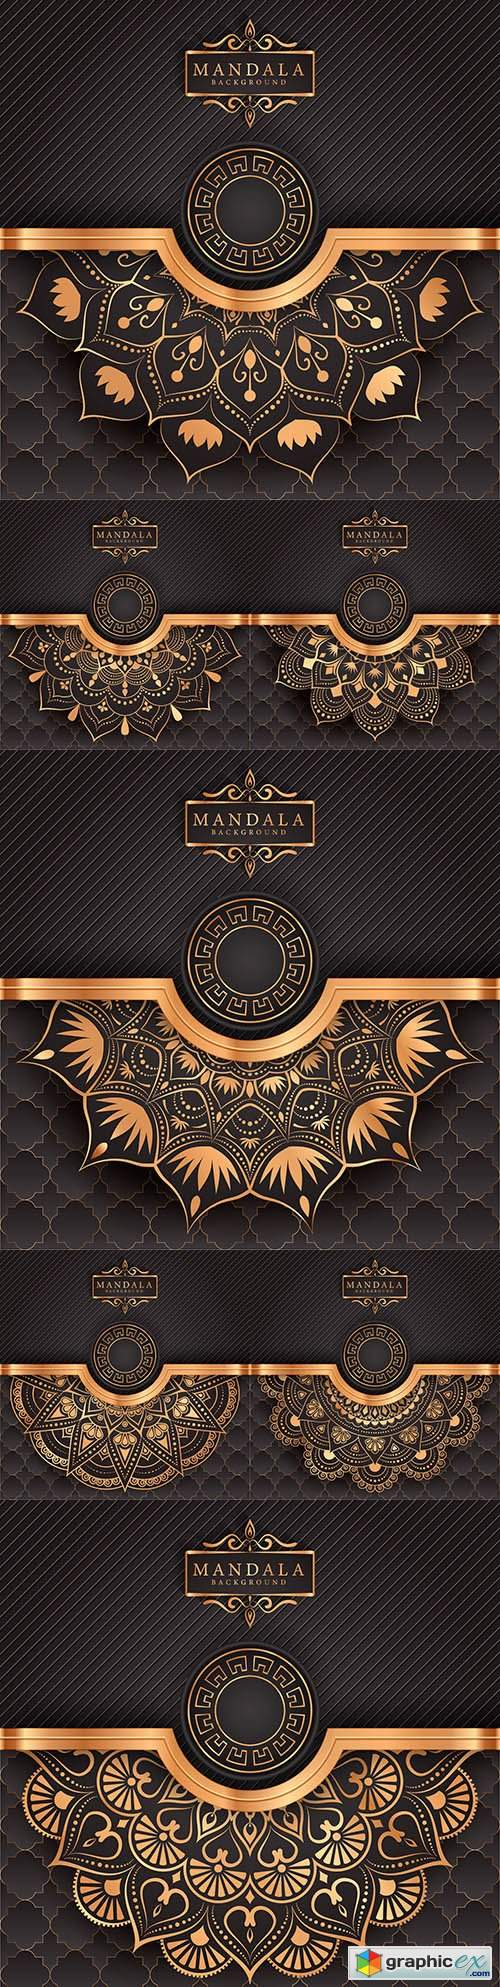 Luxury mandala decorative ethnic background element